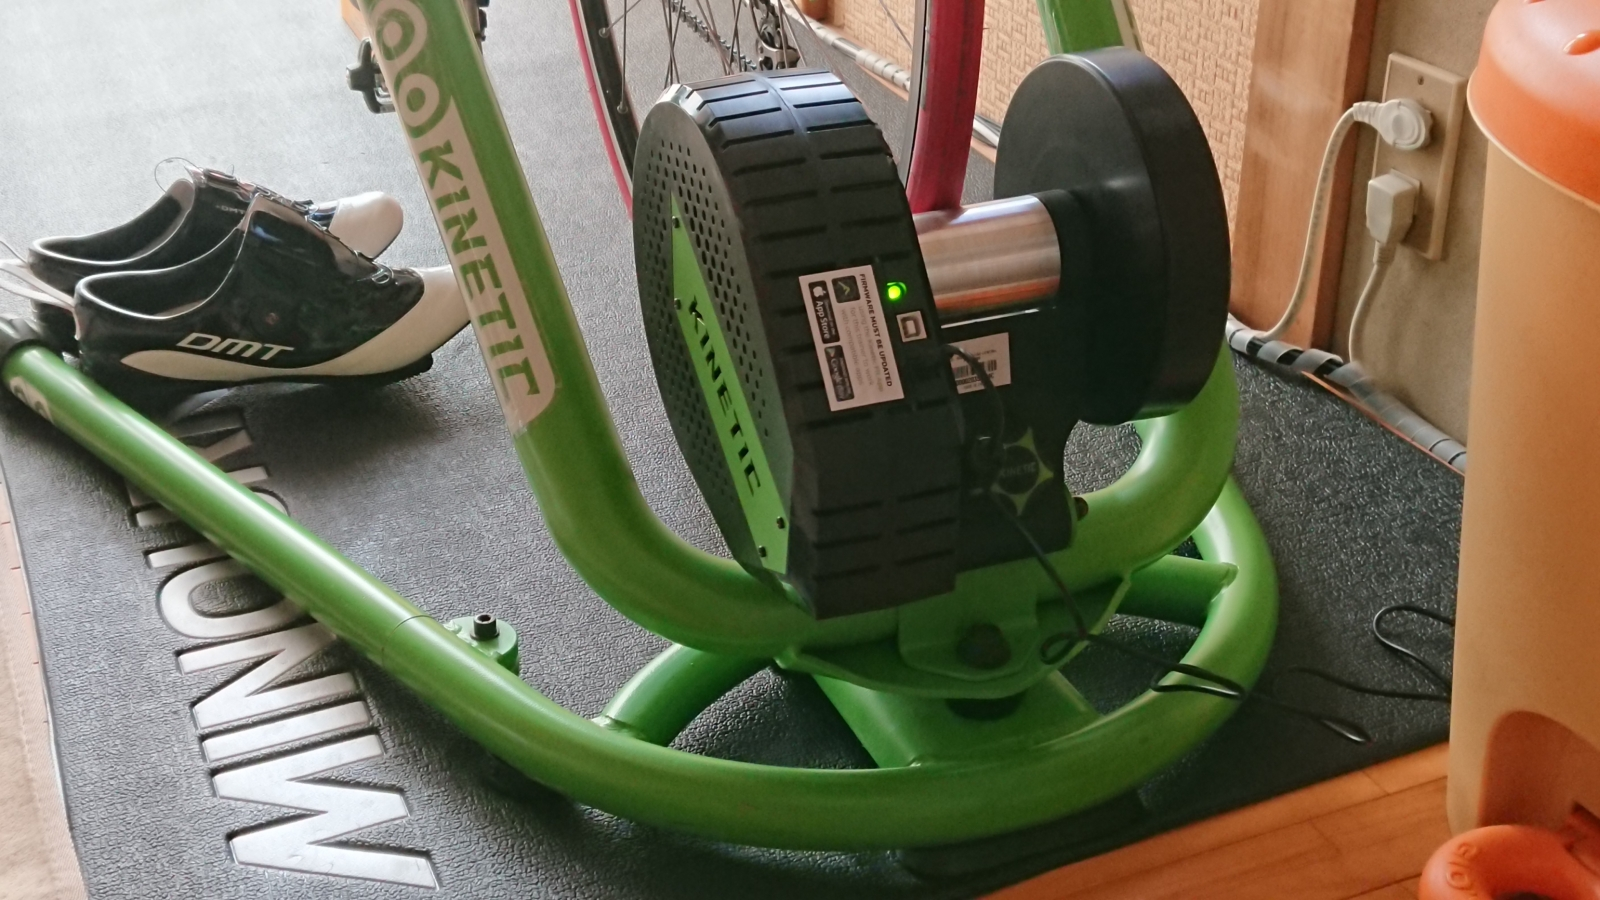 Kinetic by Kurt Rock and Roll Smart Control Trainer